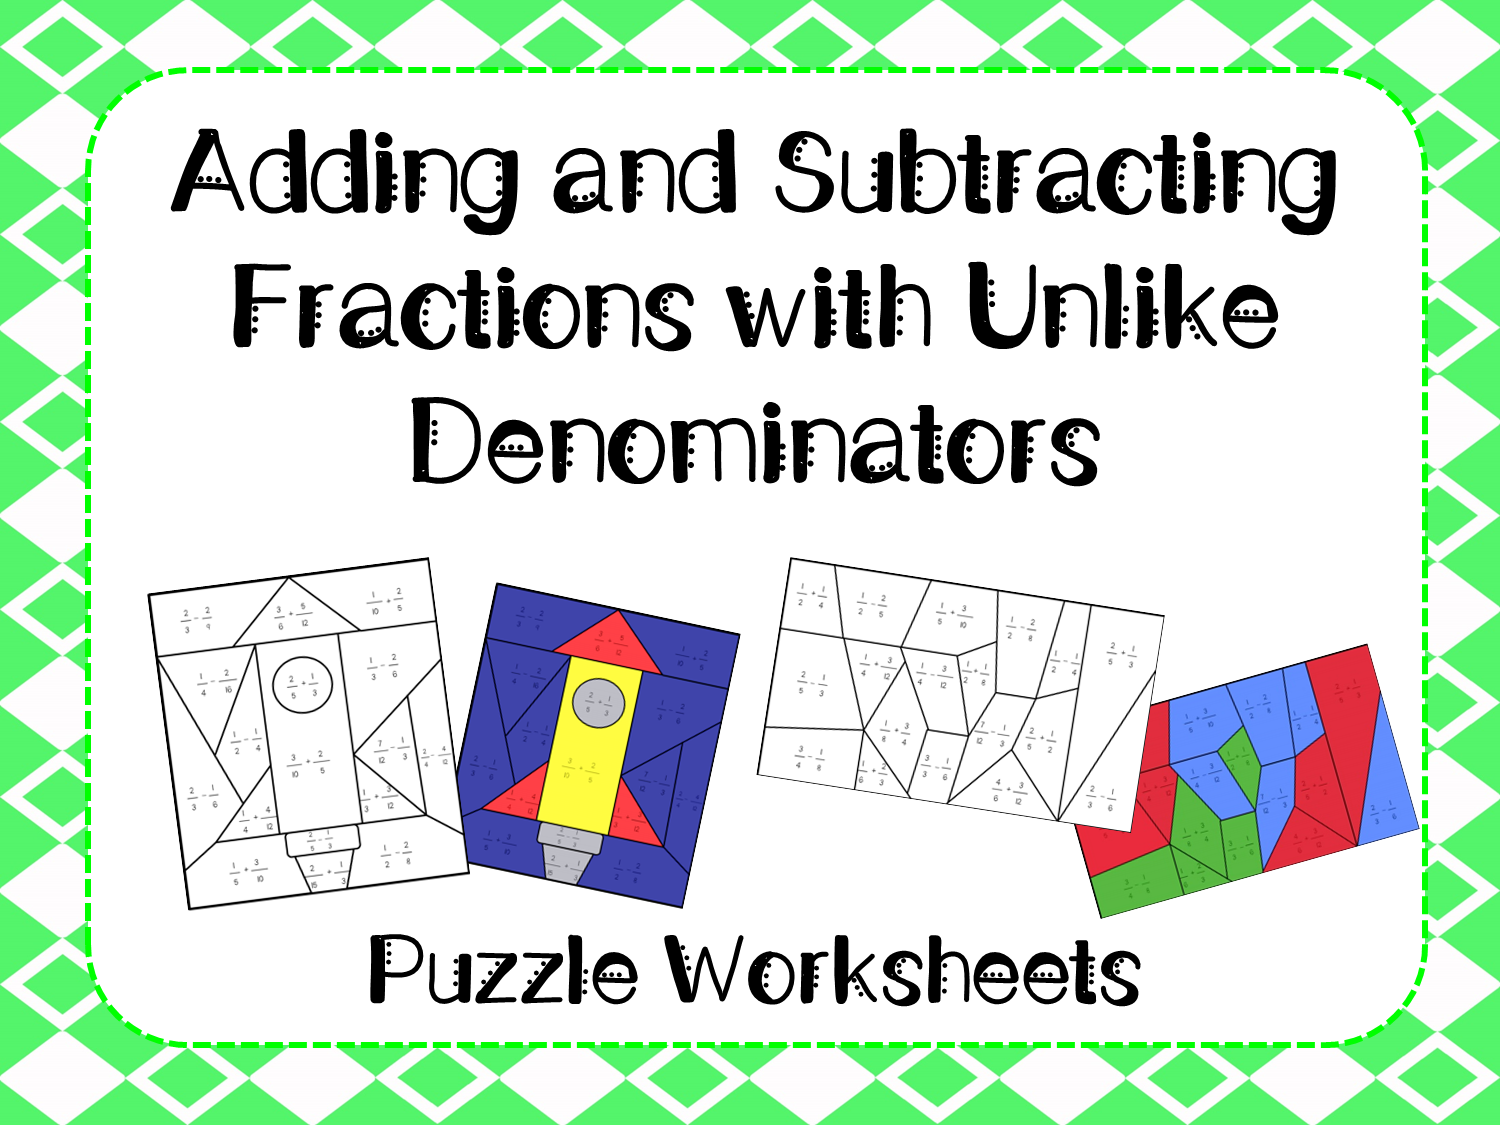 worksheet Add And Subtract Fractions With Unlike Denominators Worksheets adding and subtracting fractions with unlike denominators puzzle worksheets